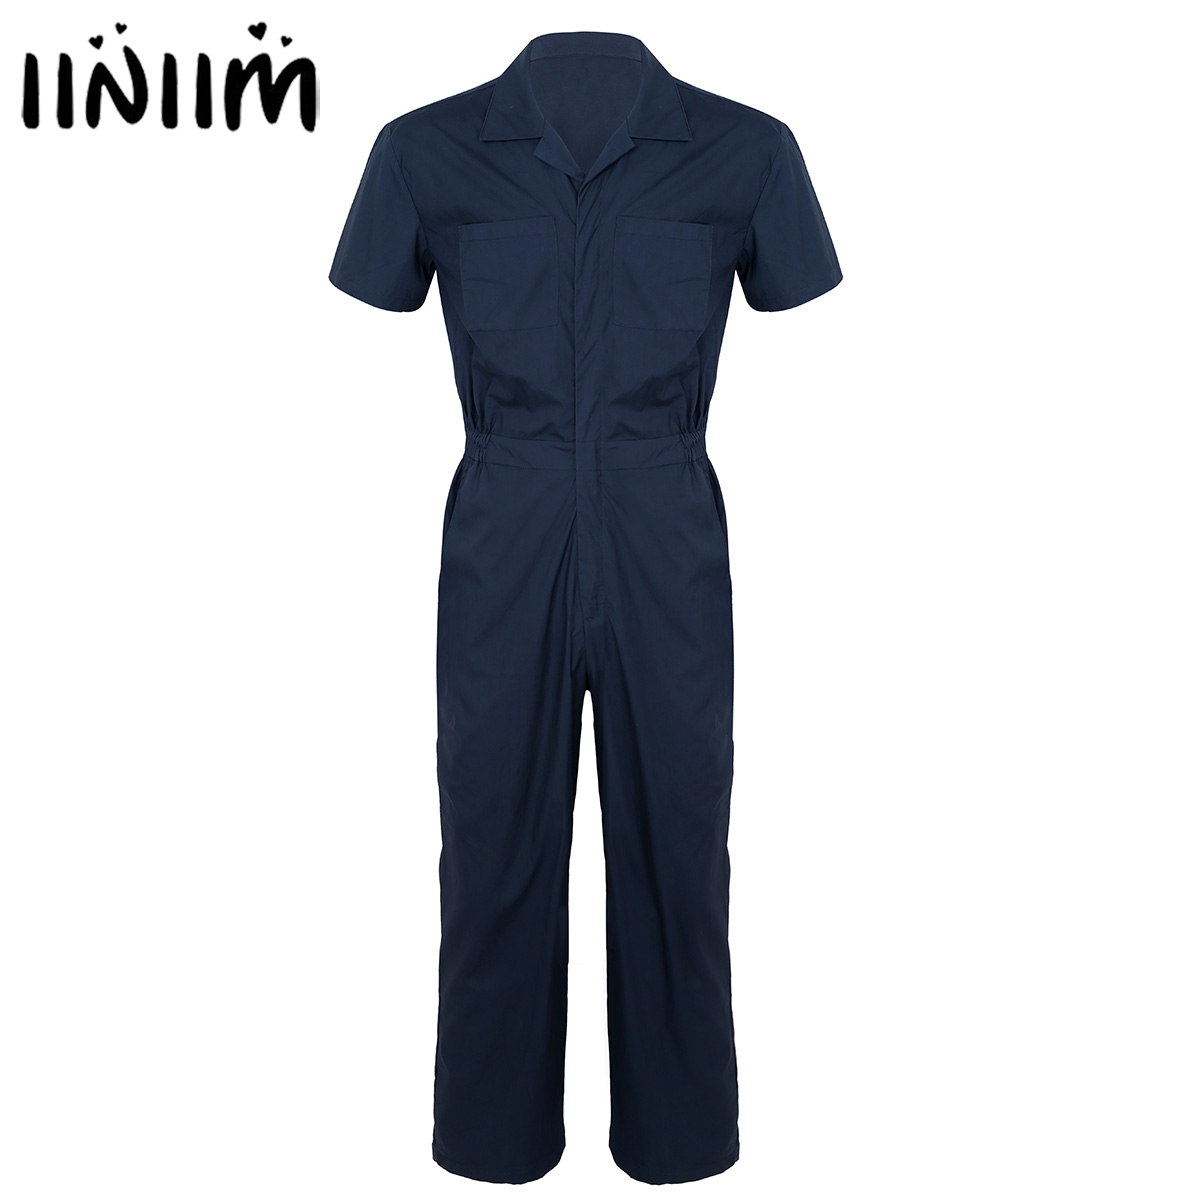 Mens Fashion Overalls Streetwear Pants Turn Down Collar Mens Clothing Zipper Front Loose Jumpsuit Rompers Suits with Pockets